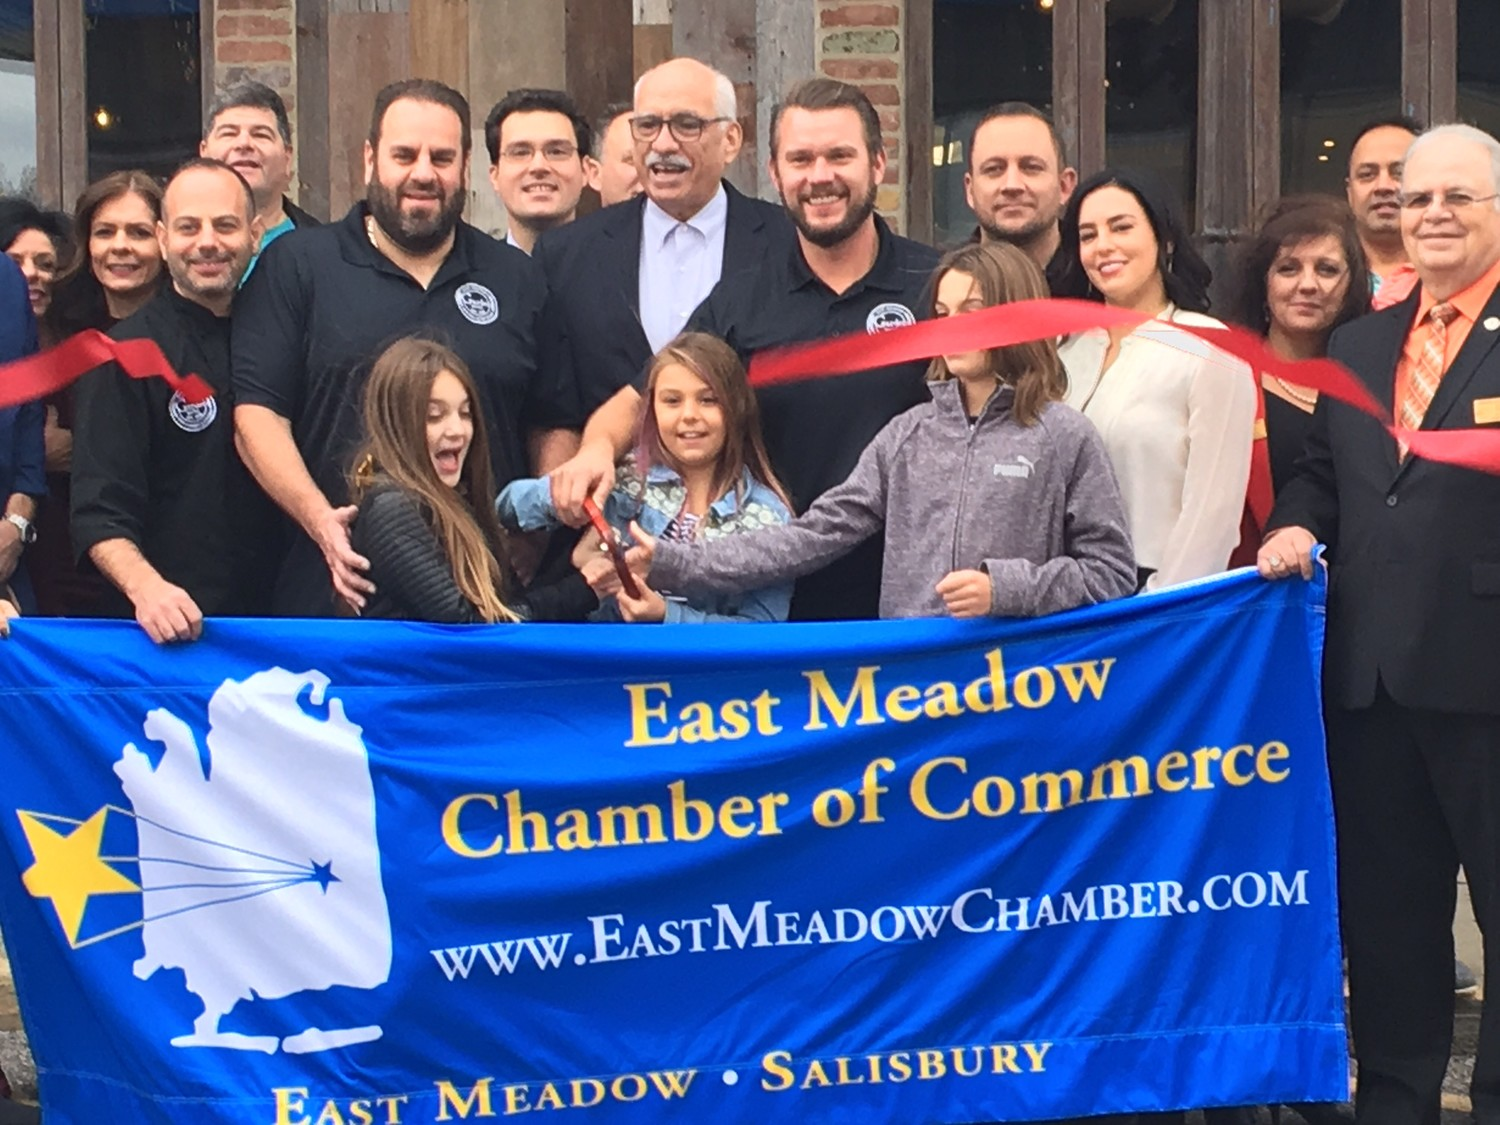 Garden Social celebrated its opening with a ribbon cutting presented by the East Meadow Chamber of Commerce on Nov. 9.